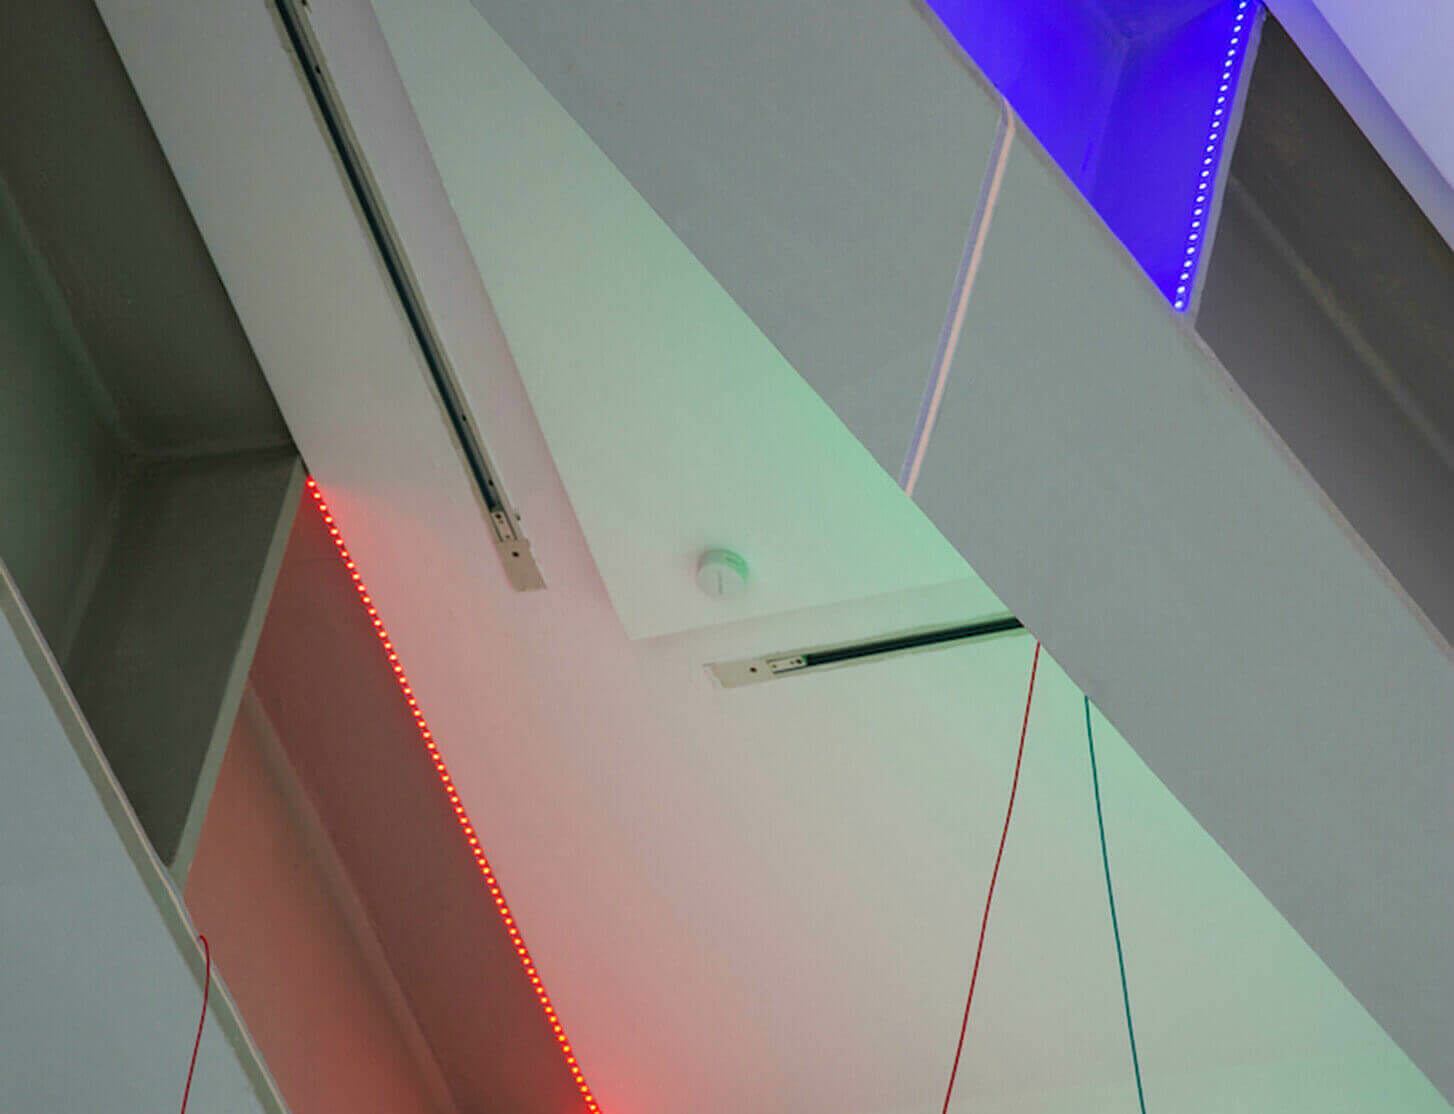 Haroon Mirza performance in Frieze's 2020 LIVE programme